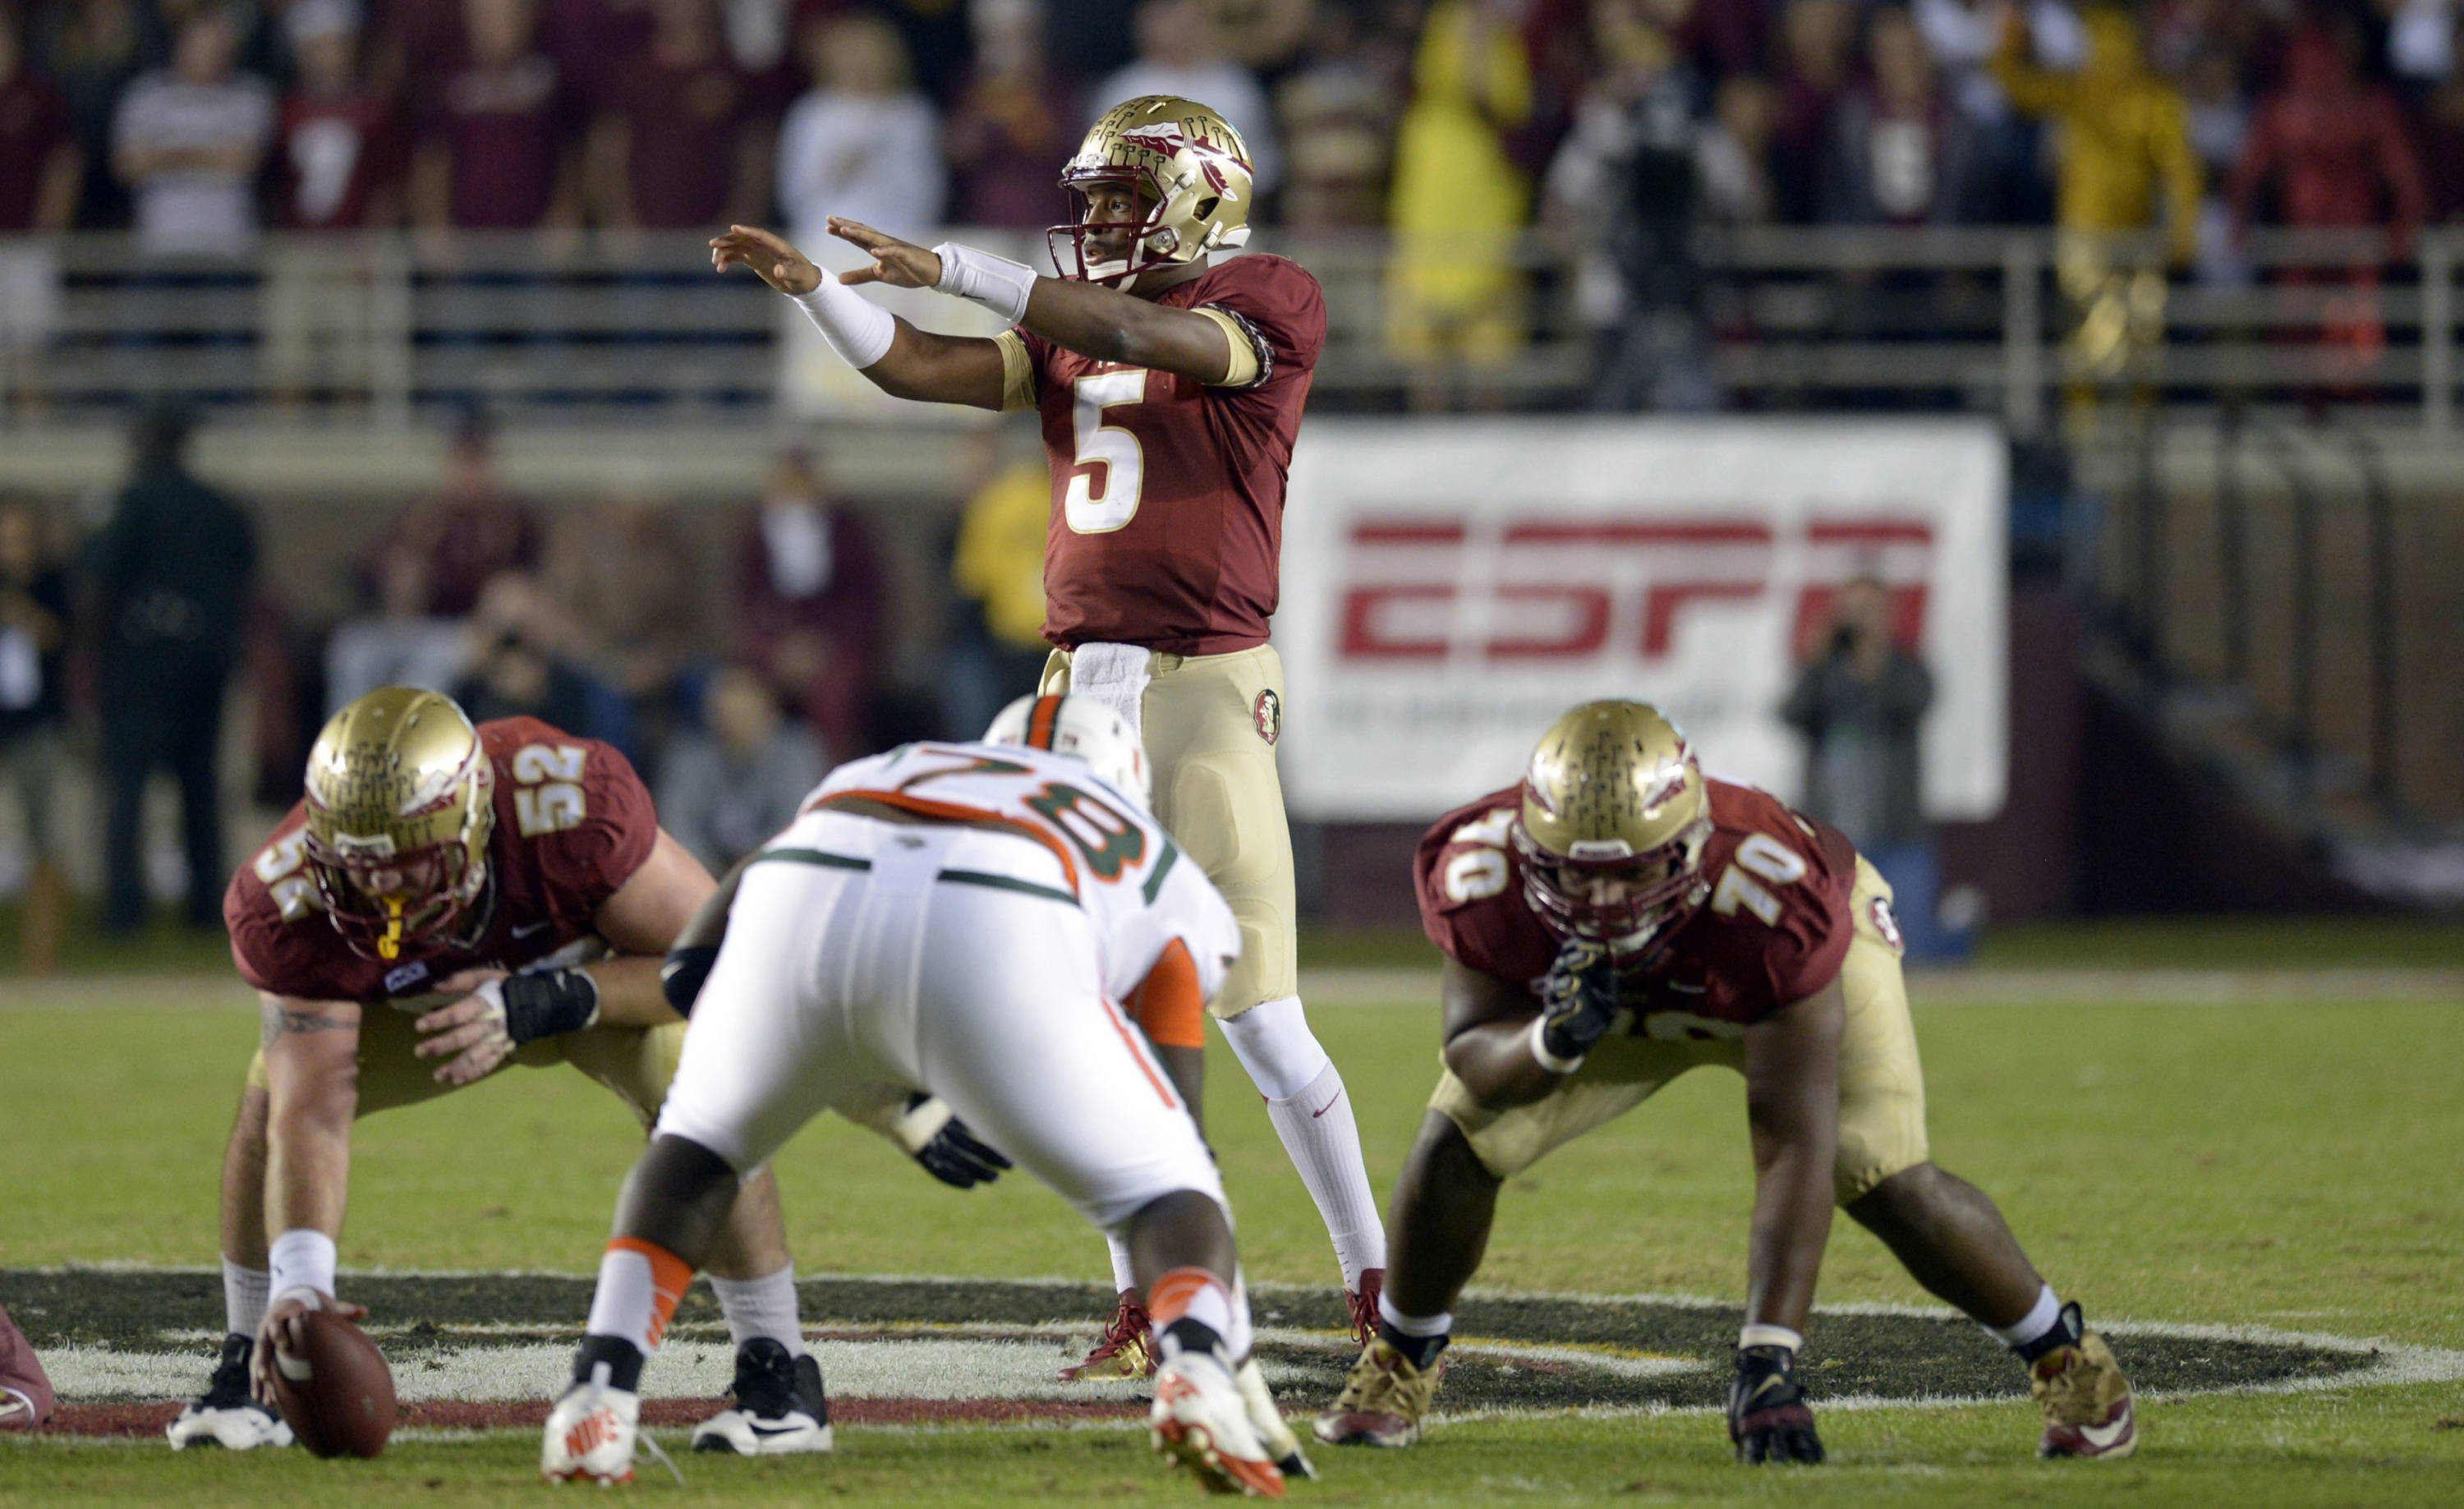 Florida State Seminoles quarterback Jameis Winston (5) signals the defense at the line against the Miami Hurricanes during the first quarter at Doak Campbell Stadium. Mandatory Credit: John David Mercer-USA TODAY Sports